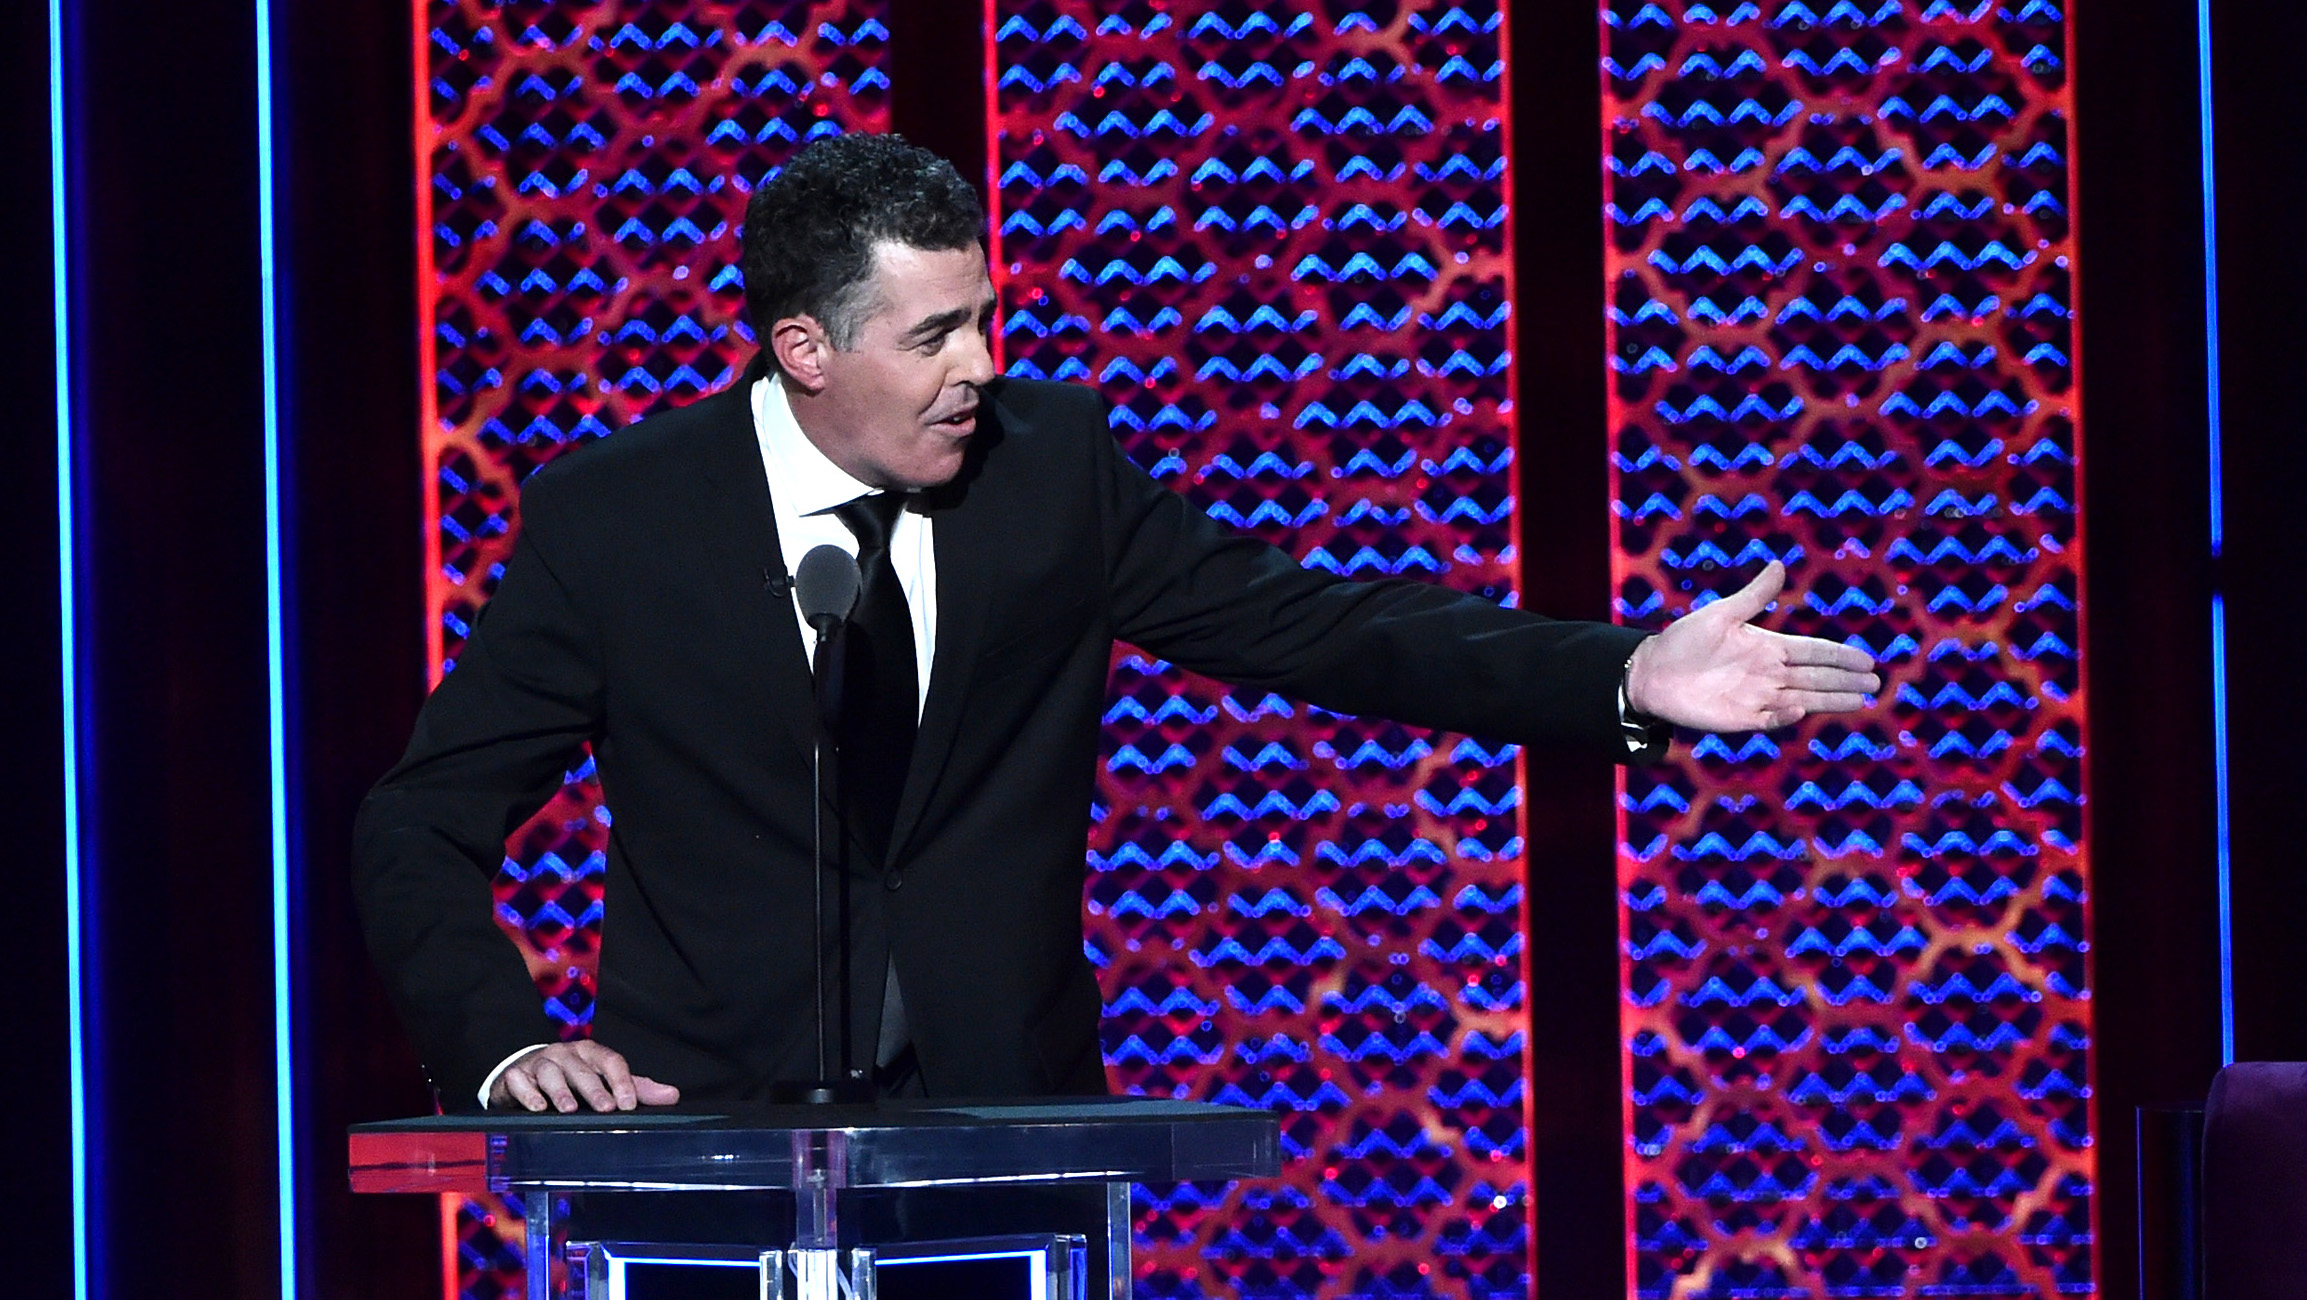 Adam Carolla roasts Alec Baldwin onstage during the Comedy Central Roast of Alec Baldwin at Saban Theatre on September 07, 2019 in Beverly Hills, California. (Photo by Alberto E. Rodriguez/Getty Images for Comedy Central)